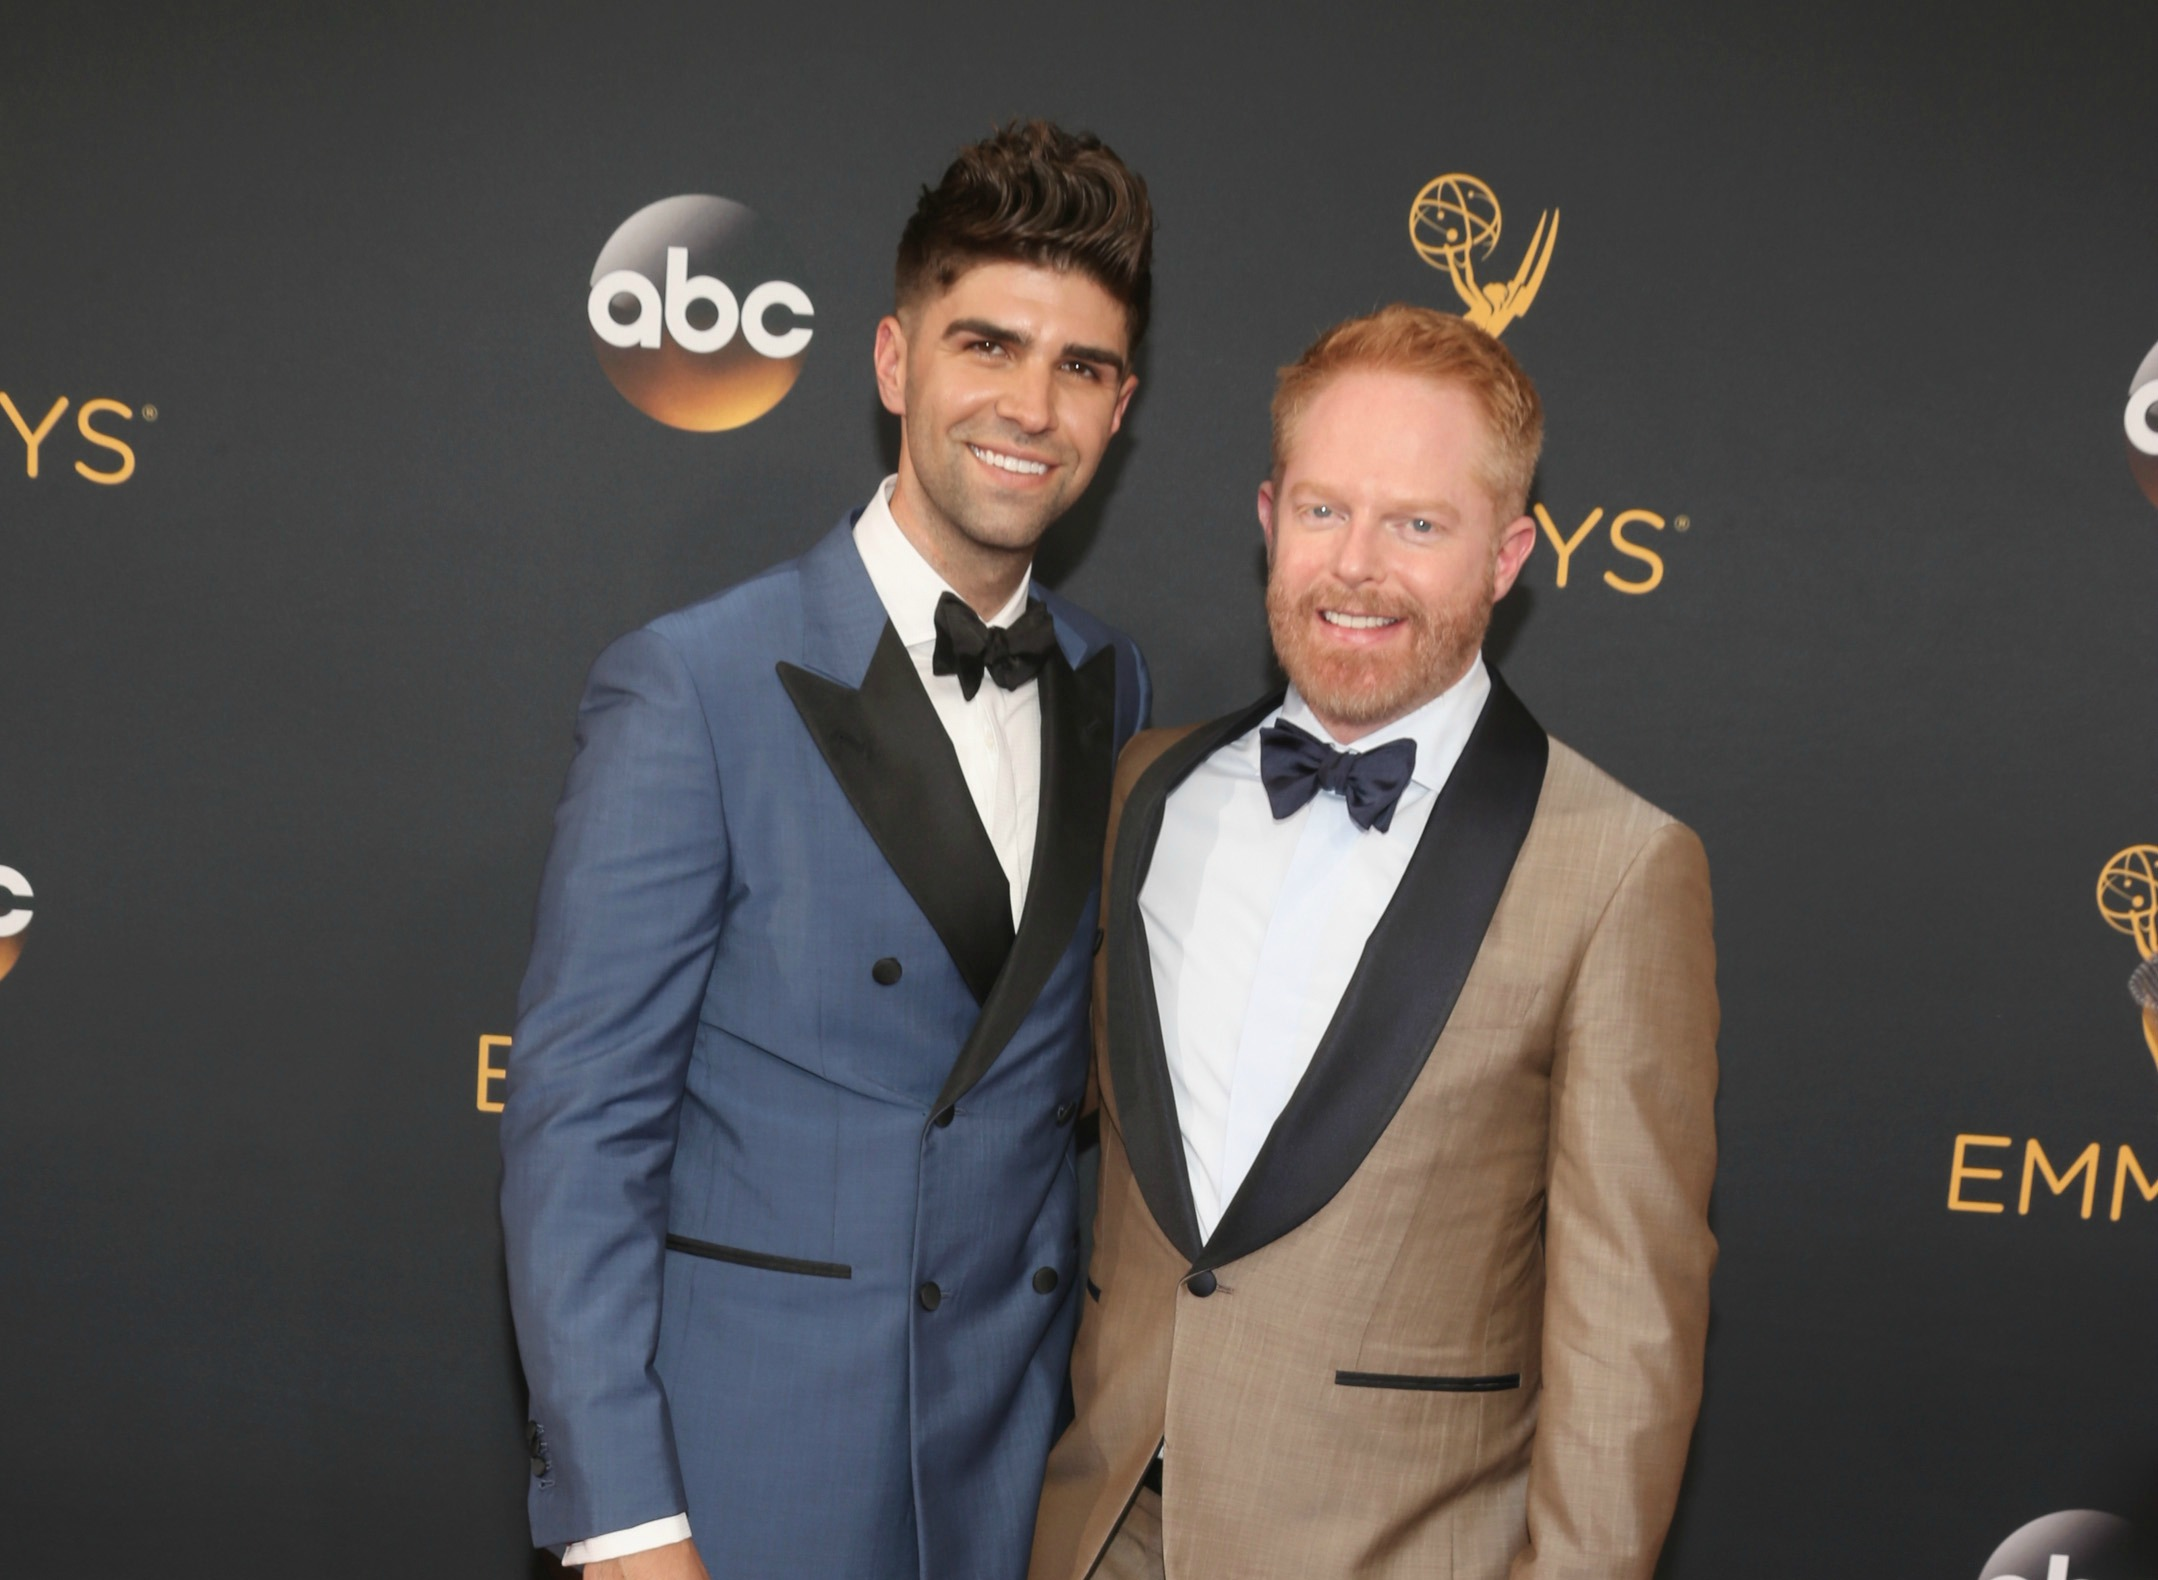 """Modern Family's"" Jesse Tyler Ferguson and his husband looked super adorbs at the Emmys"